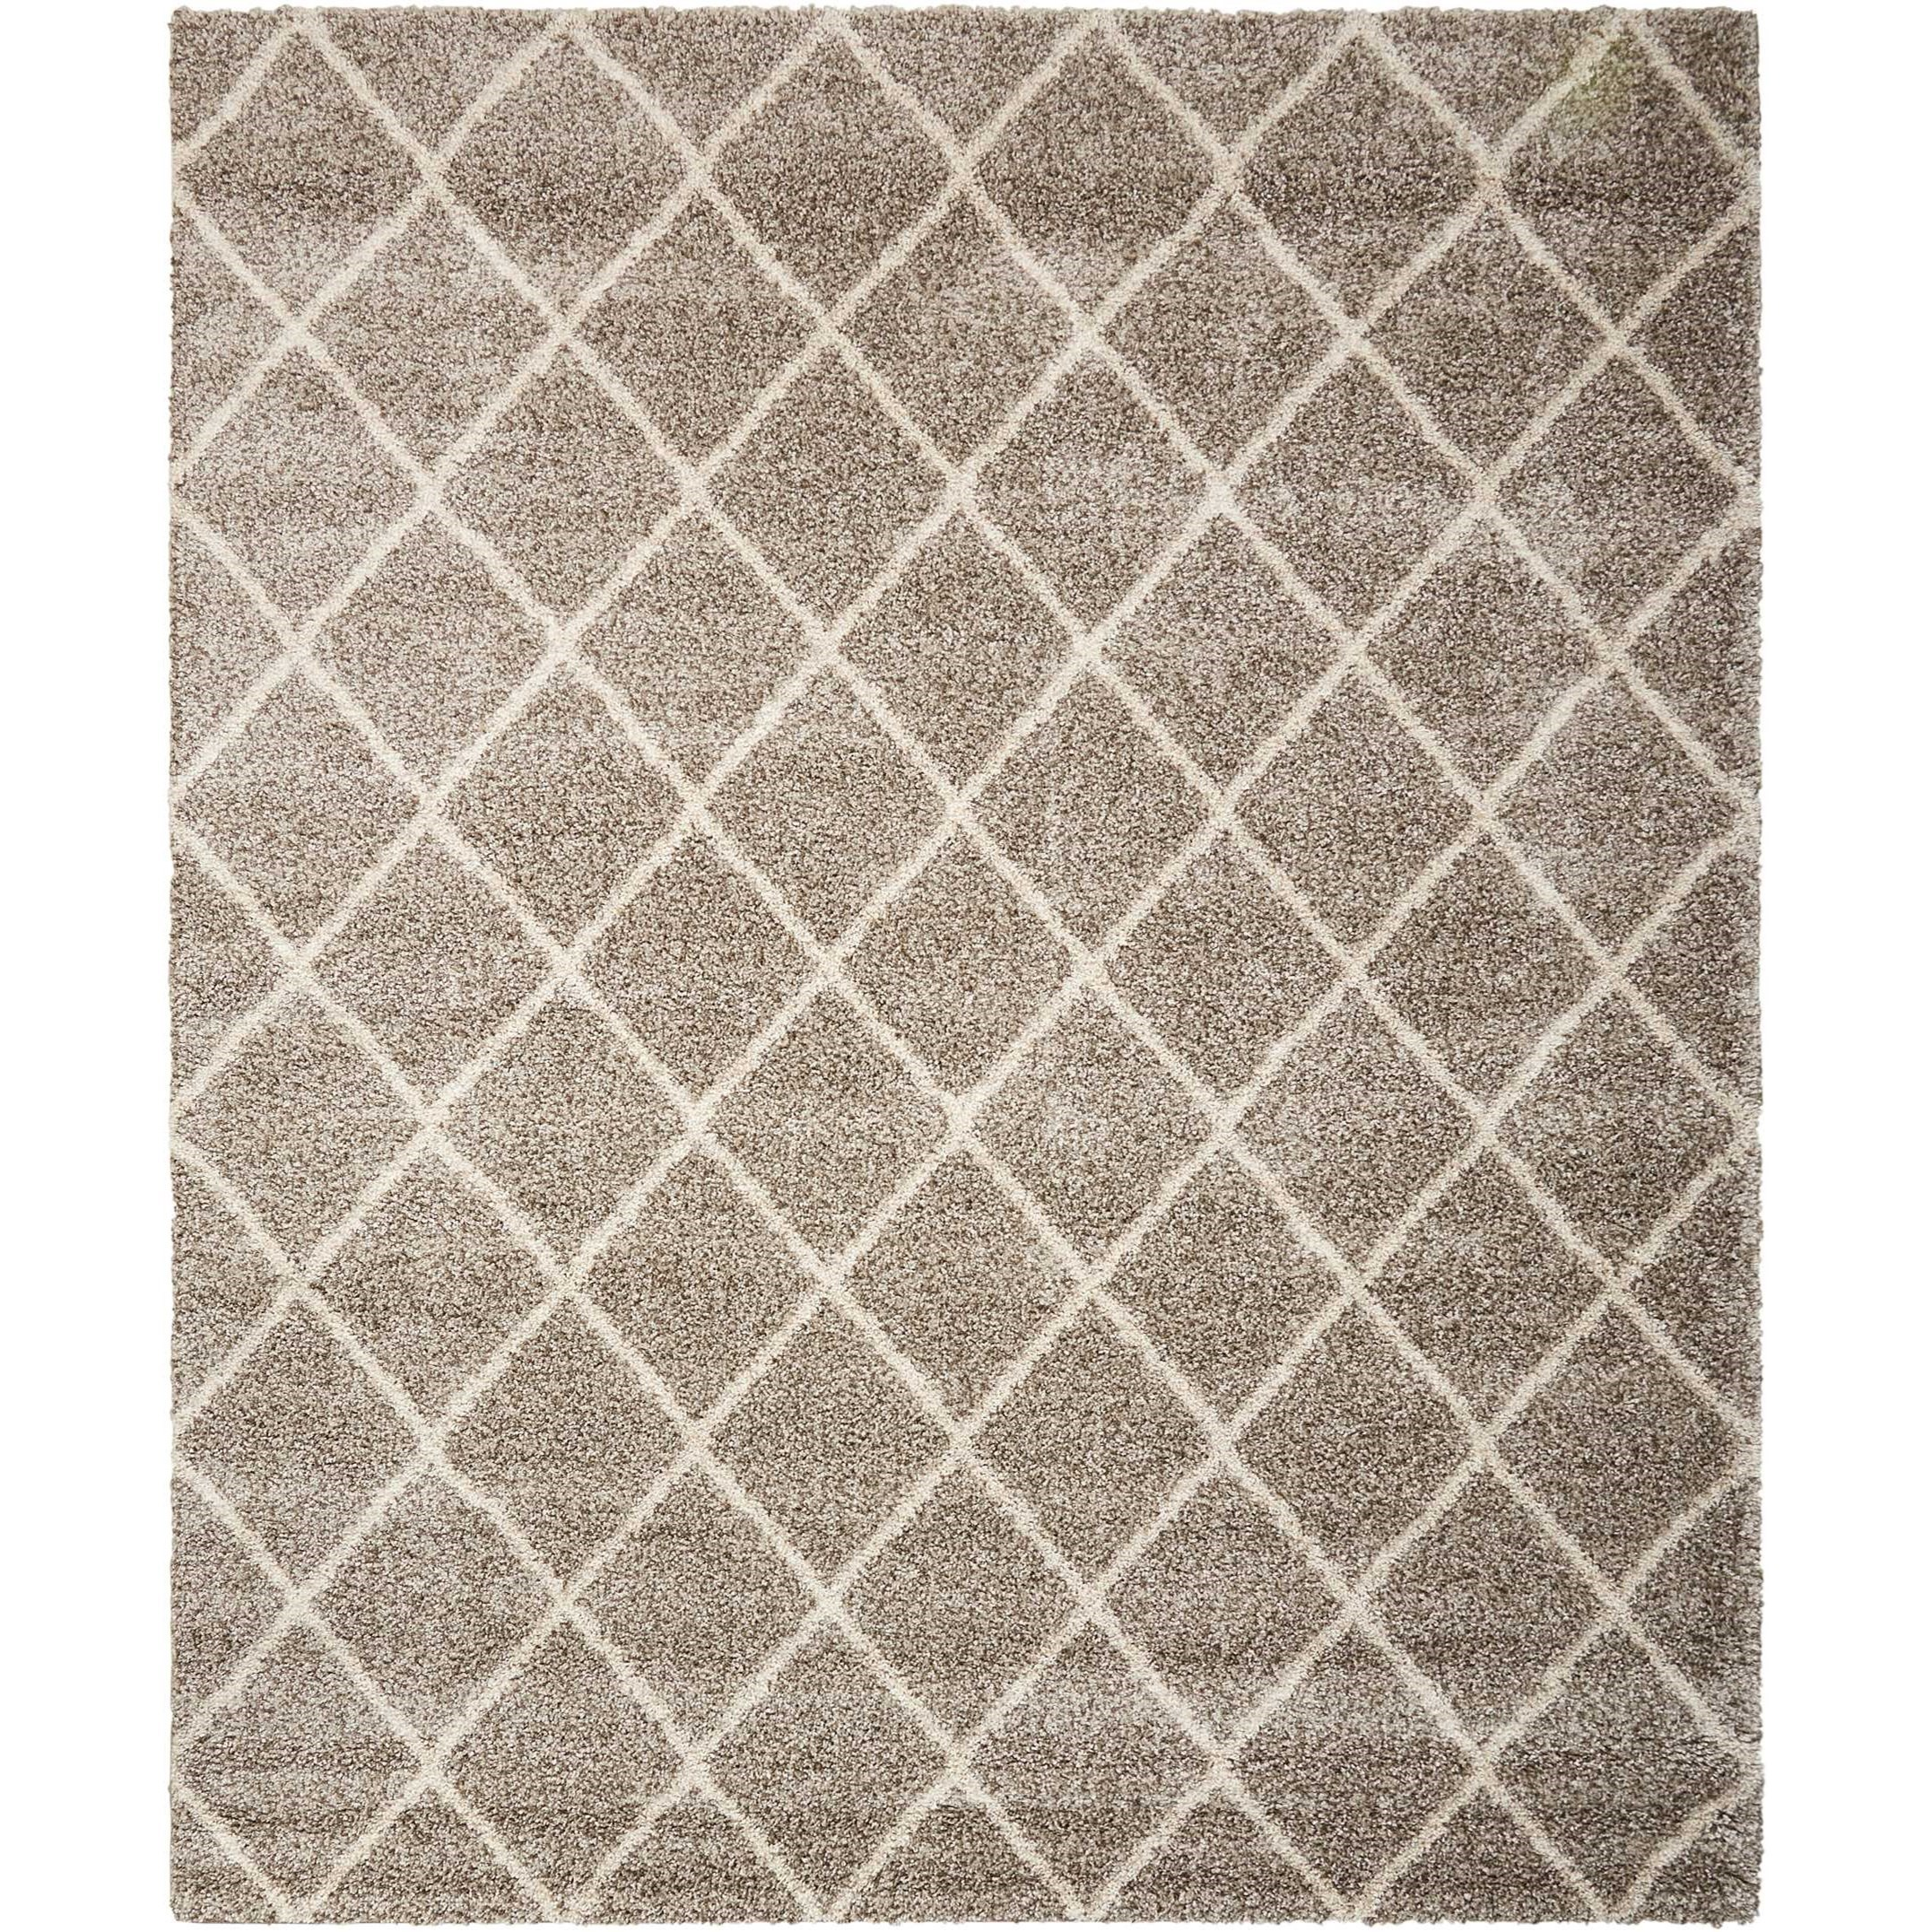 Brisbane 5' x 7' Stone Rectangle Rug by Nourison at Sprintz Furniture